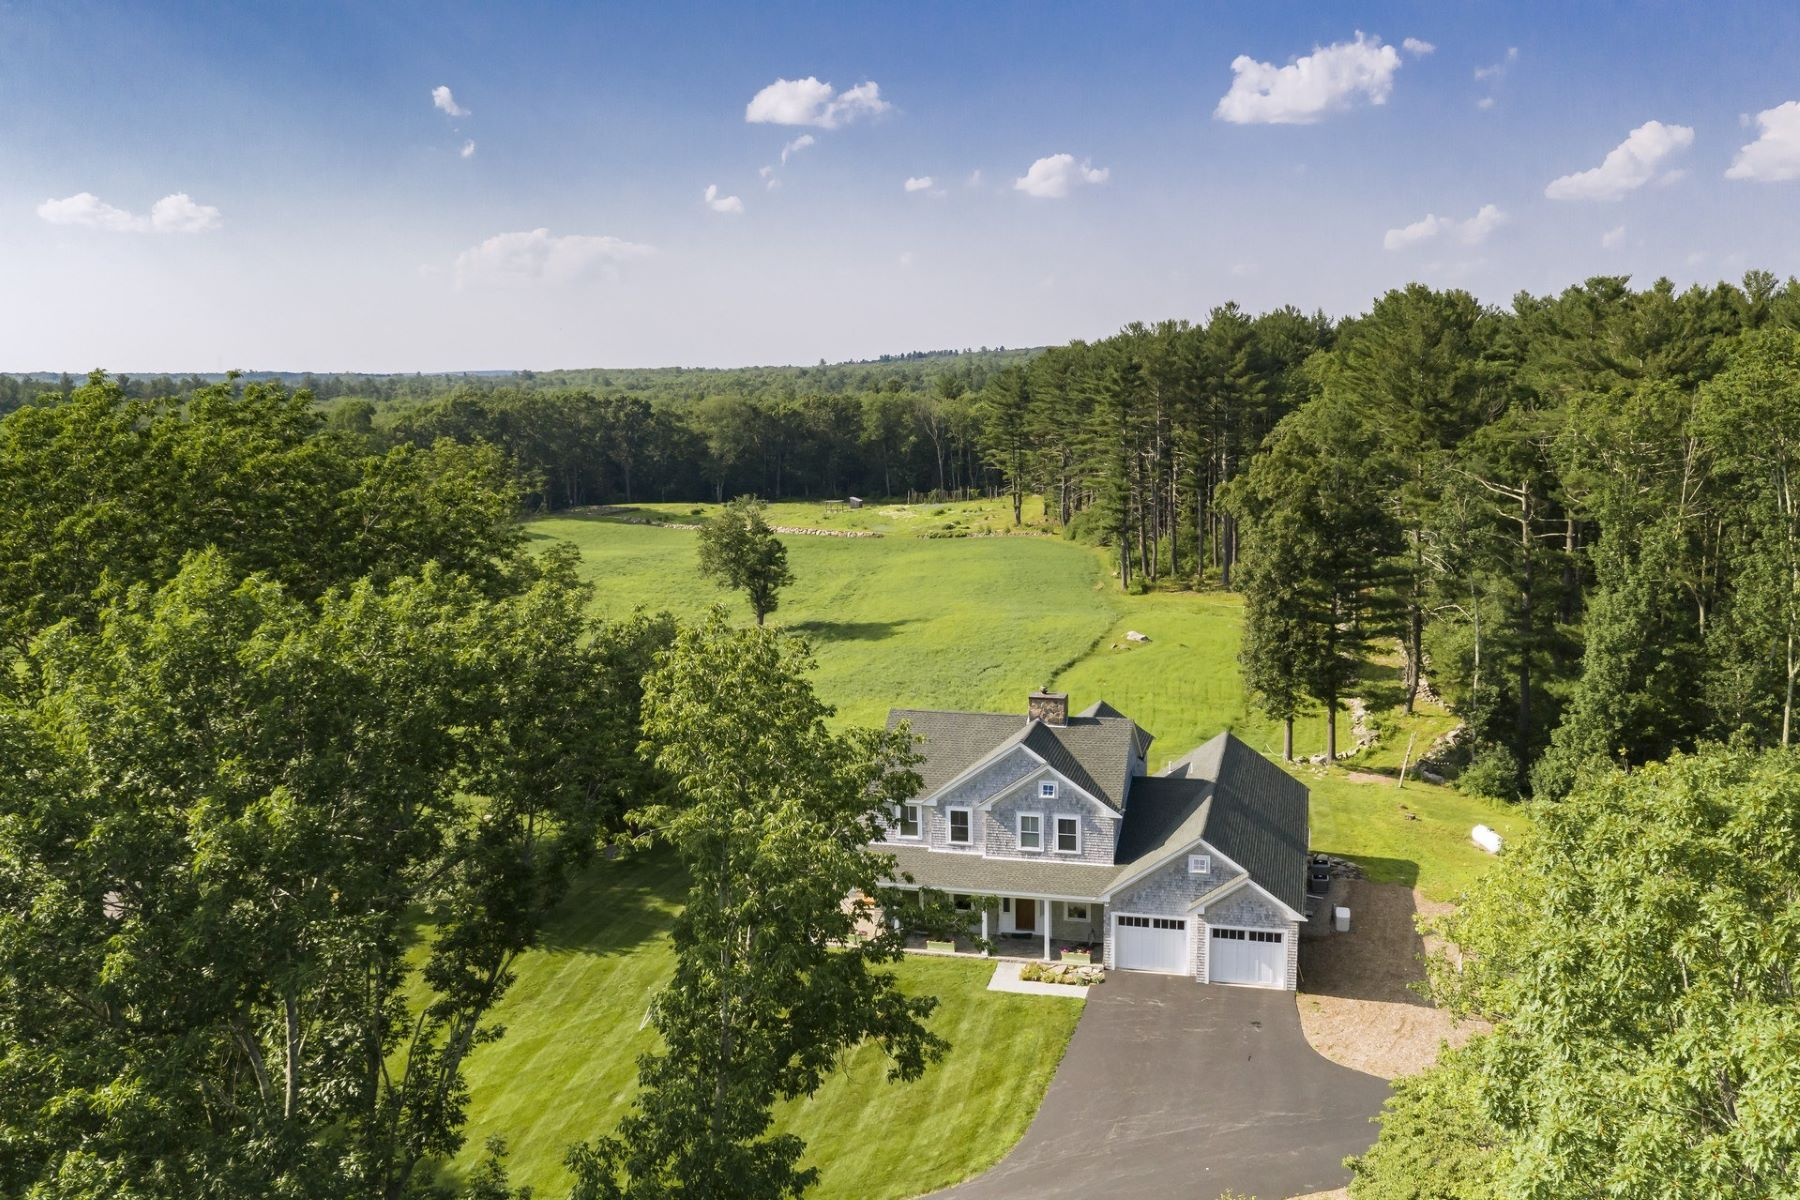 Single Family Homes for Sale at 459 Log Road, Smithfield, RI 459 Log Road Smithfield, Rhode Island 02917 United States